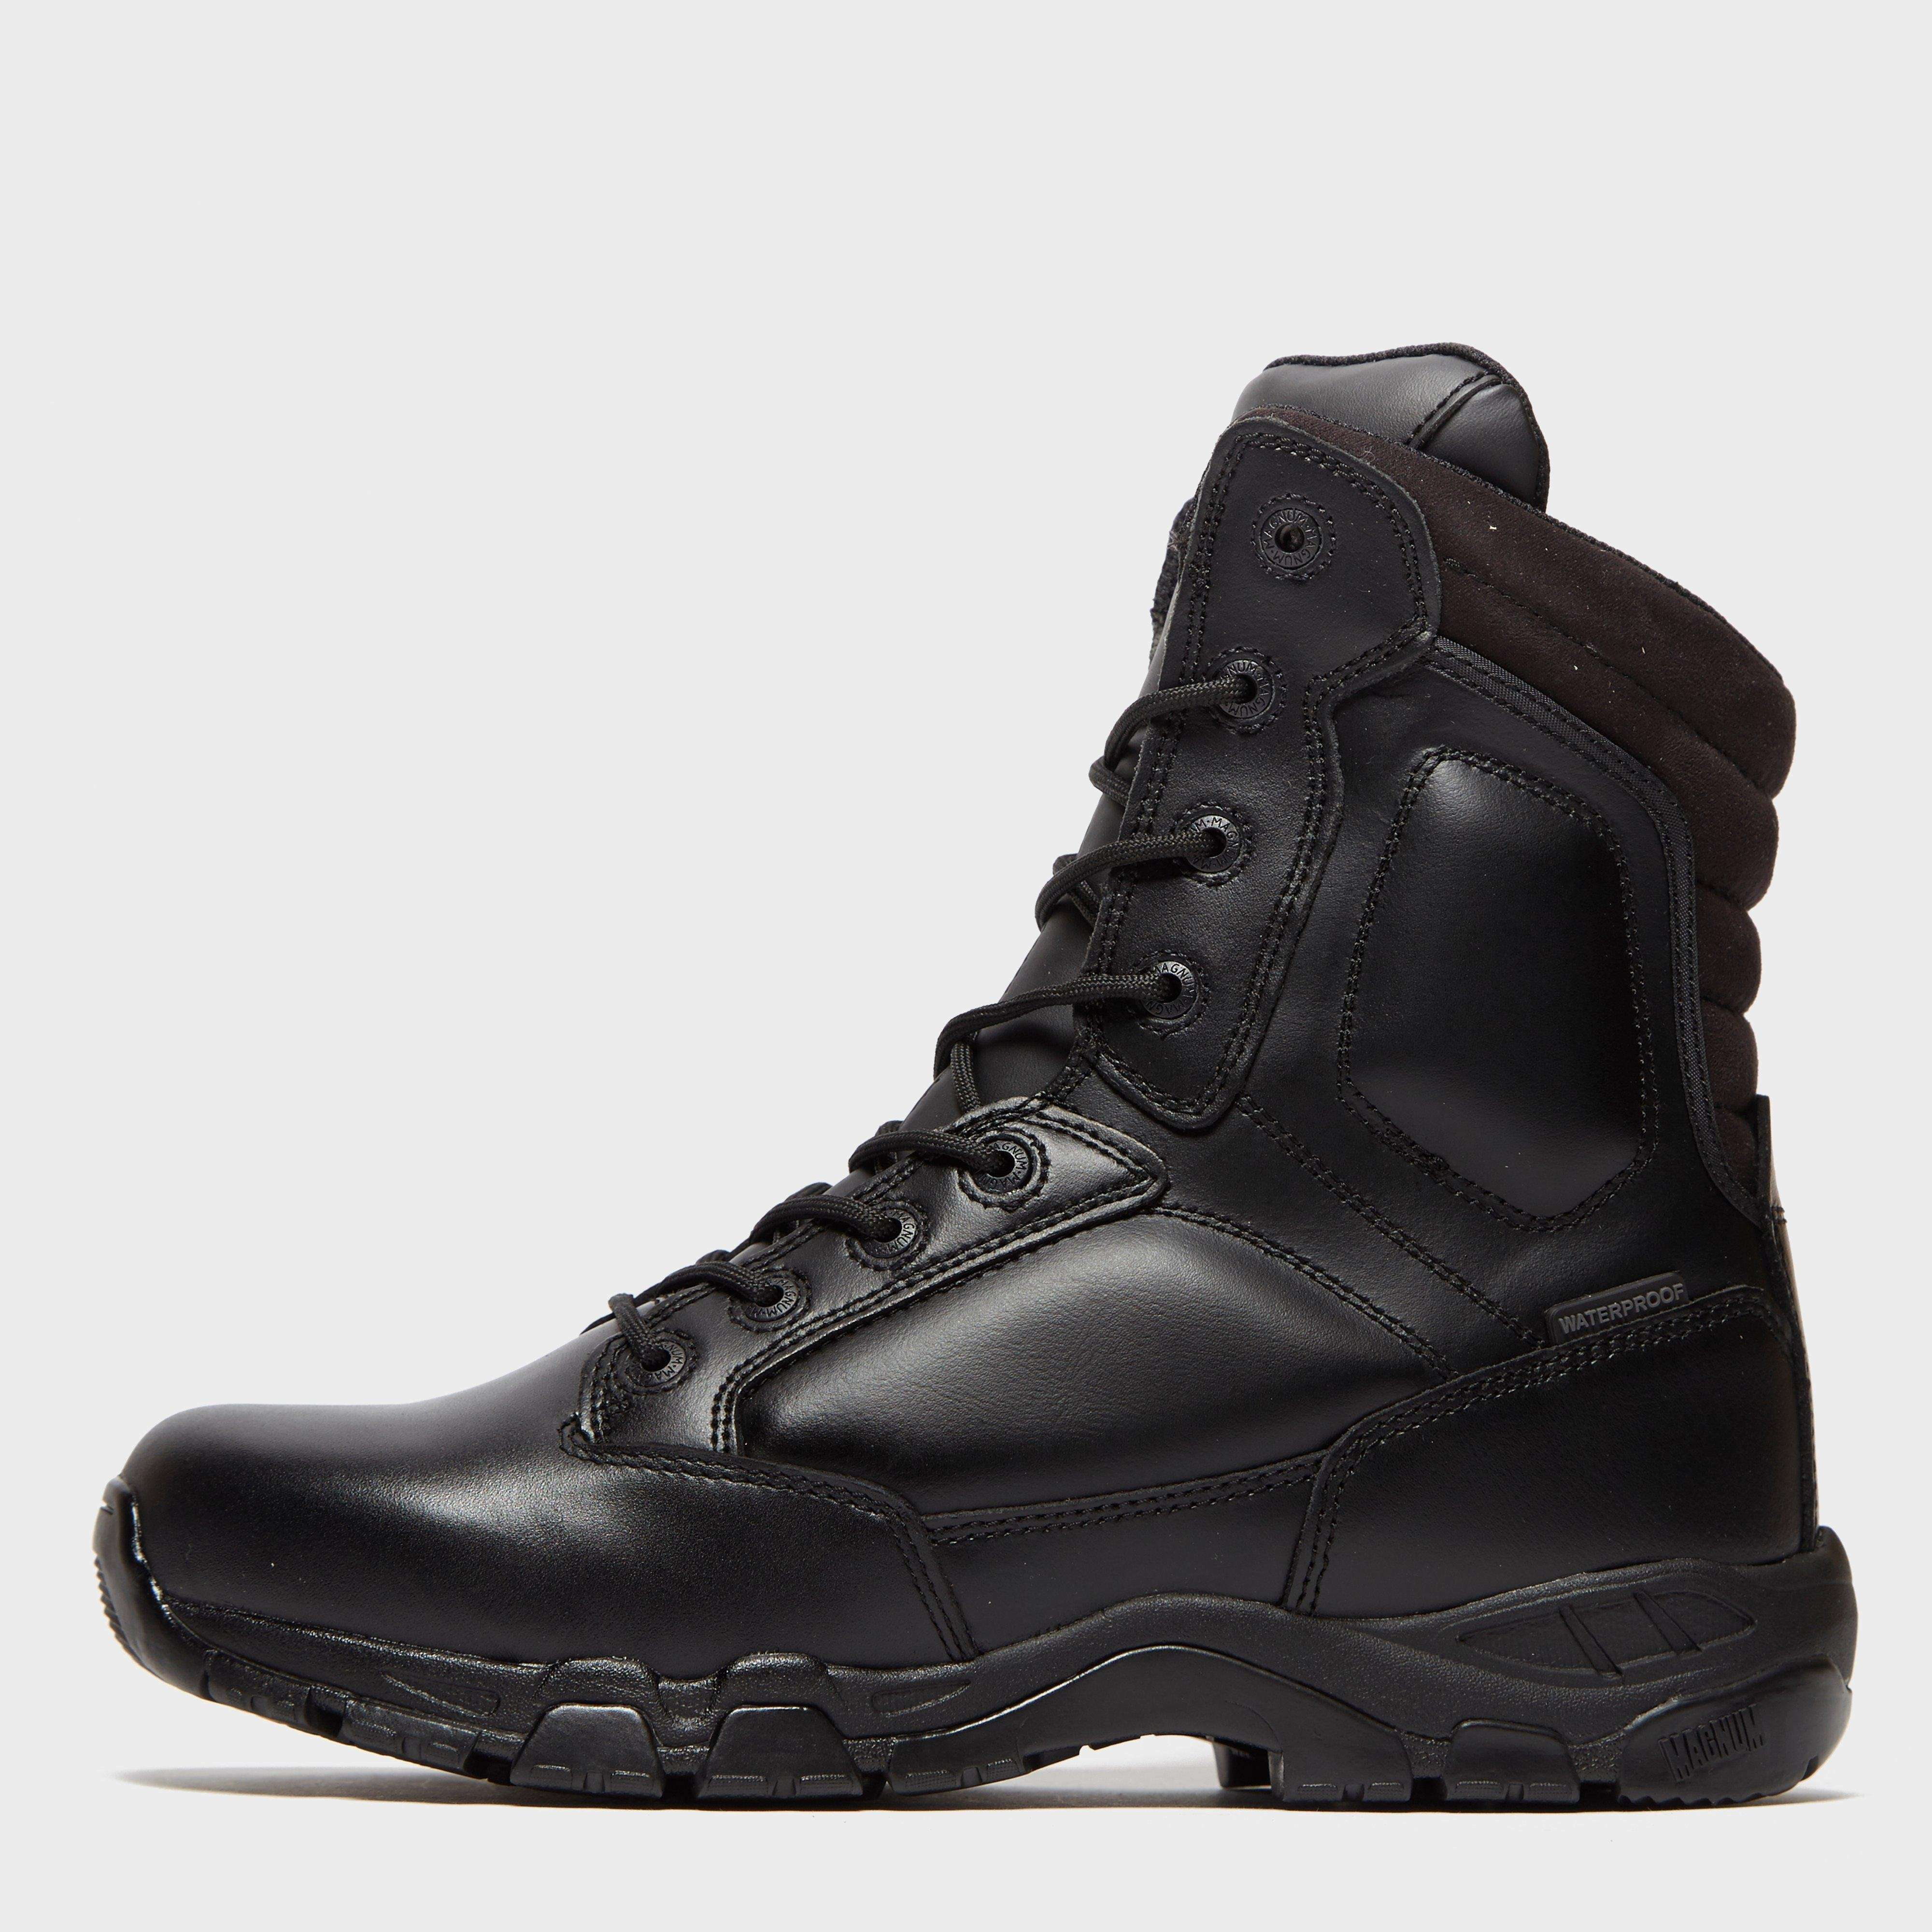 MAGNUM Men's Viper Pro Waterproof All Leather Work Boot